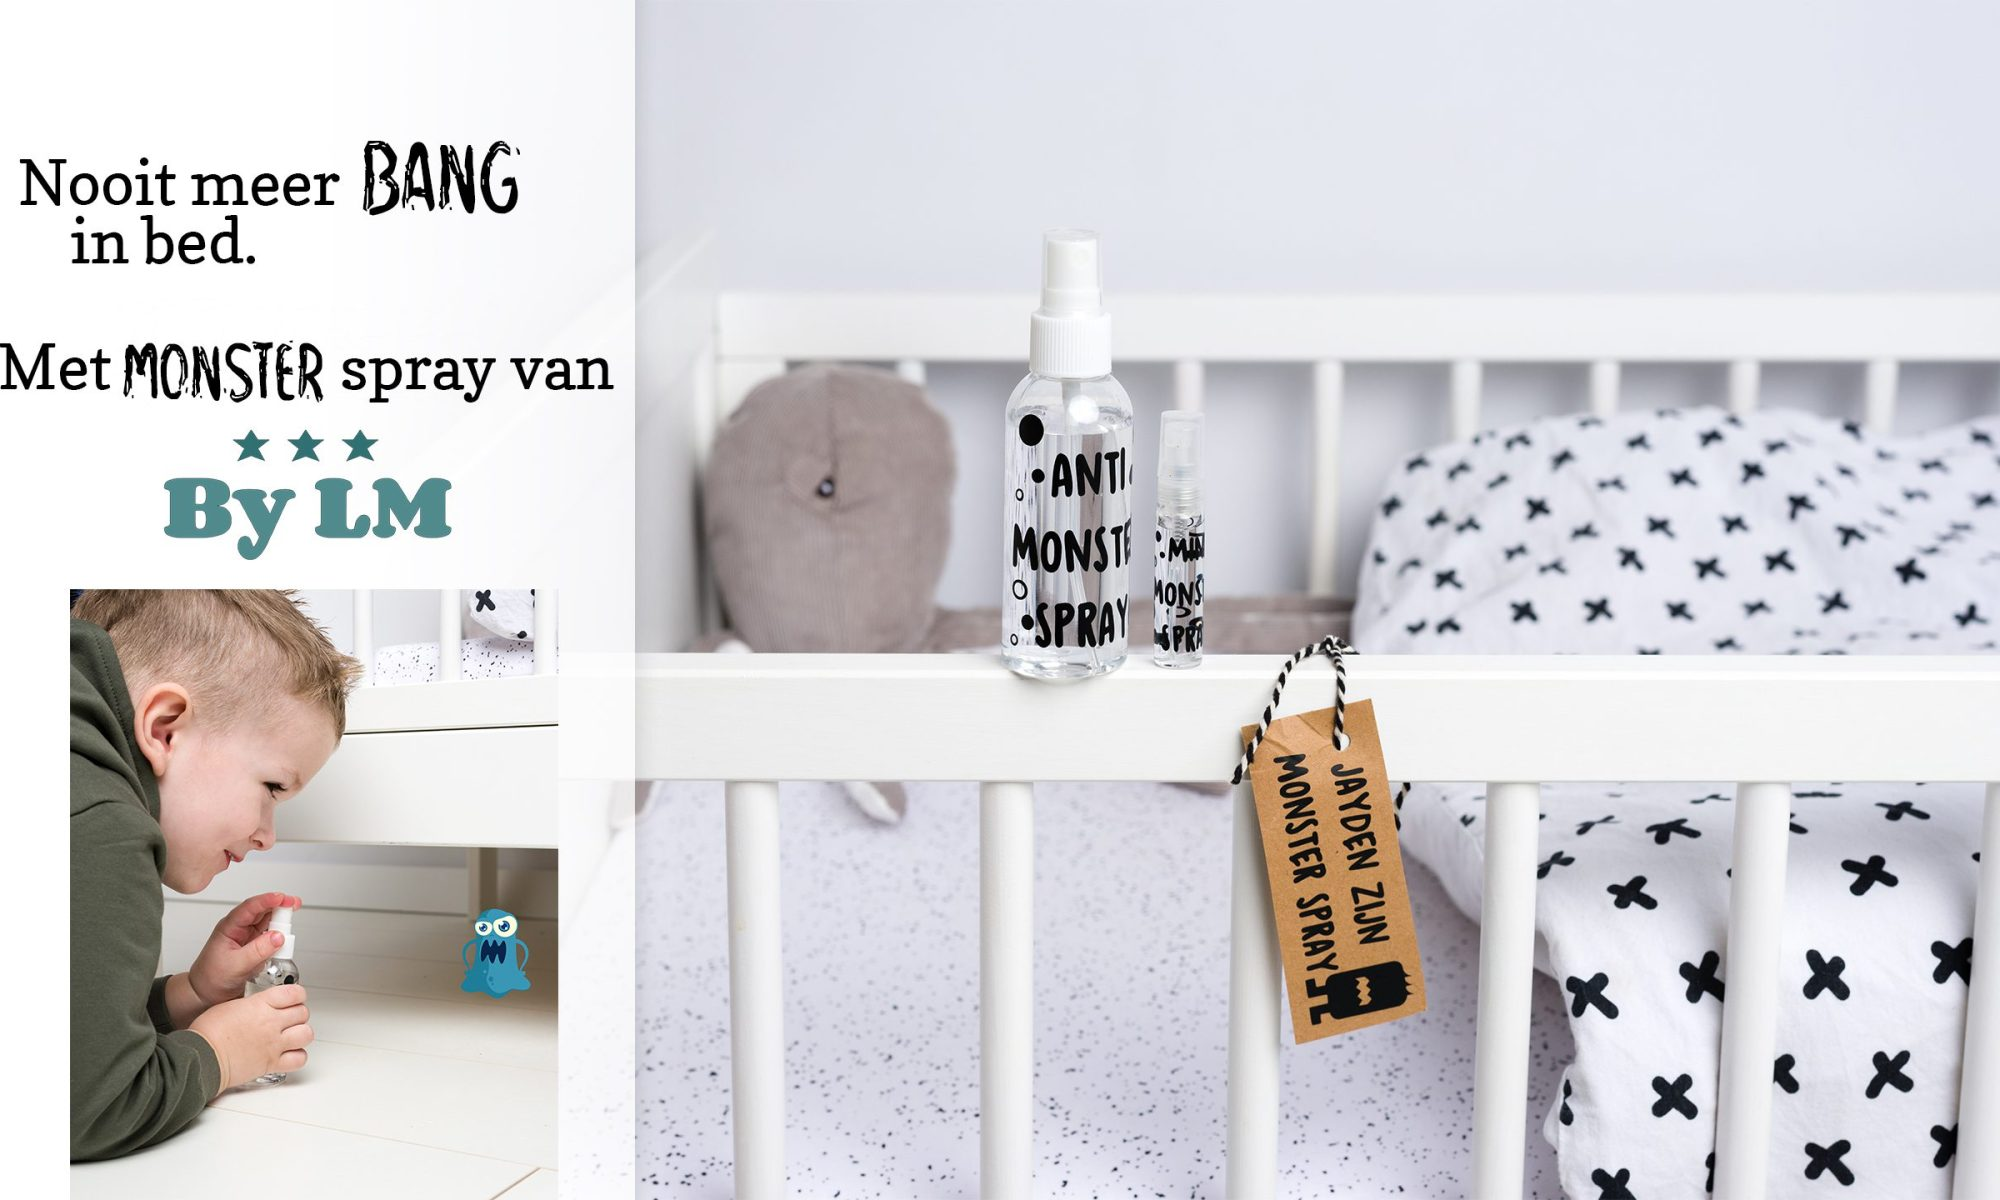 Monsterspray peuter monsters bang donker bed mama blog by LM bylm www.liefkleinwonder.nl